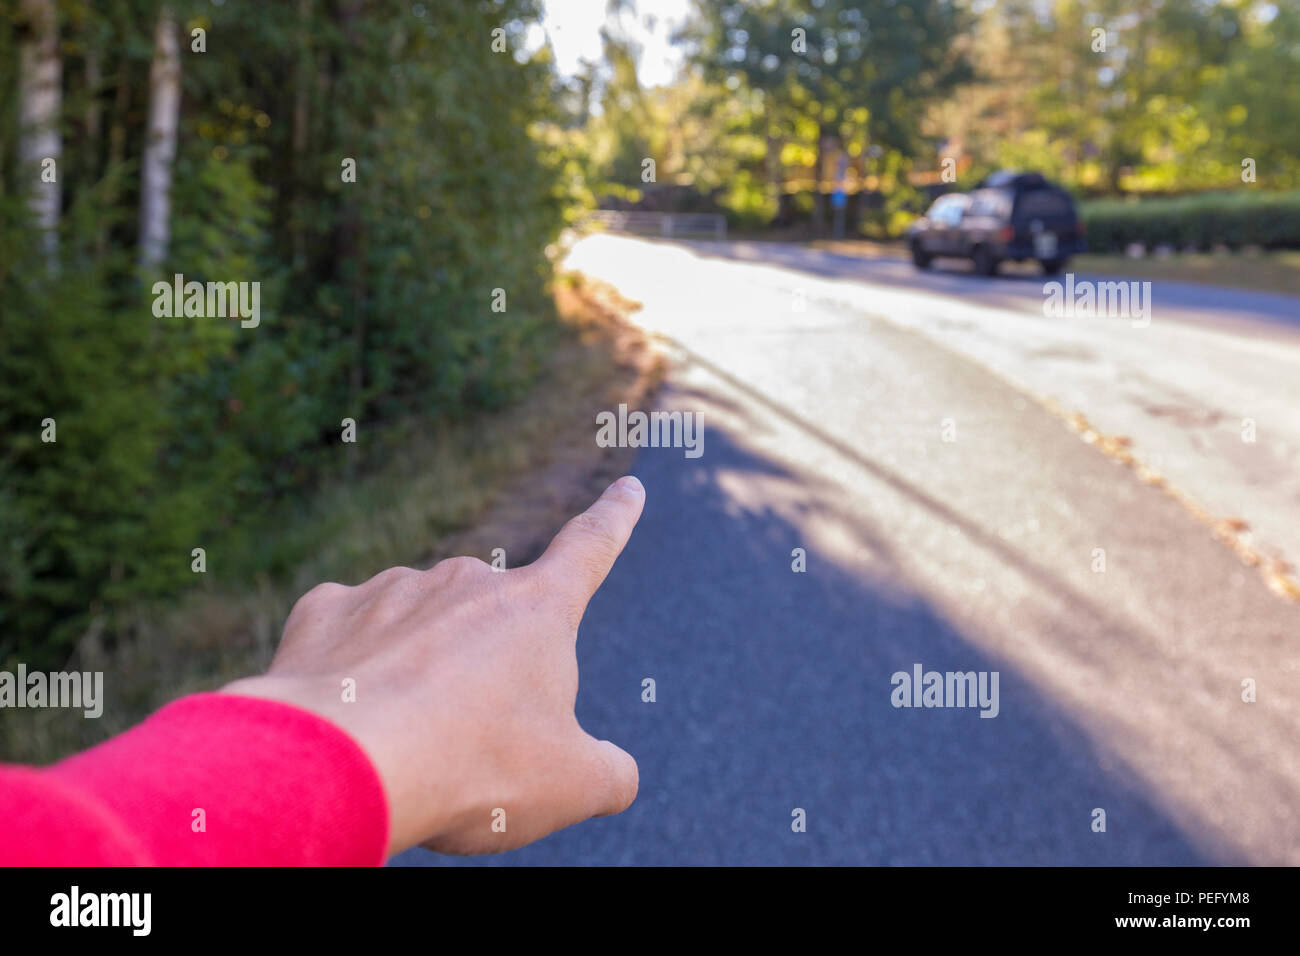 Person's hand and index finger pointing straight ahead on a street, giving directions Stock Photo